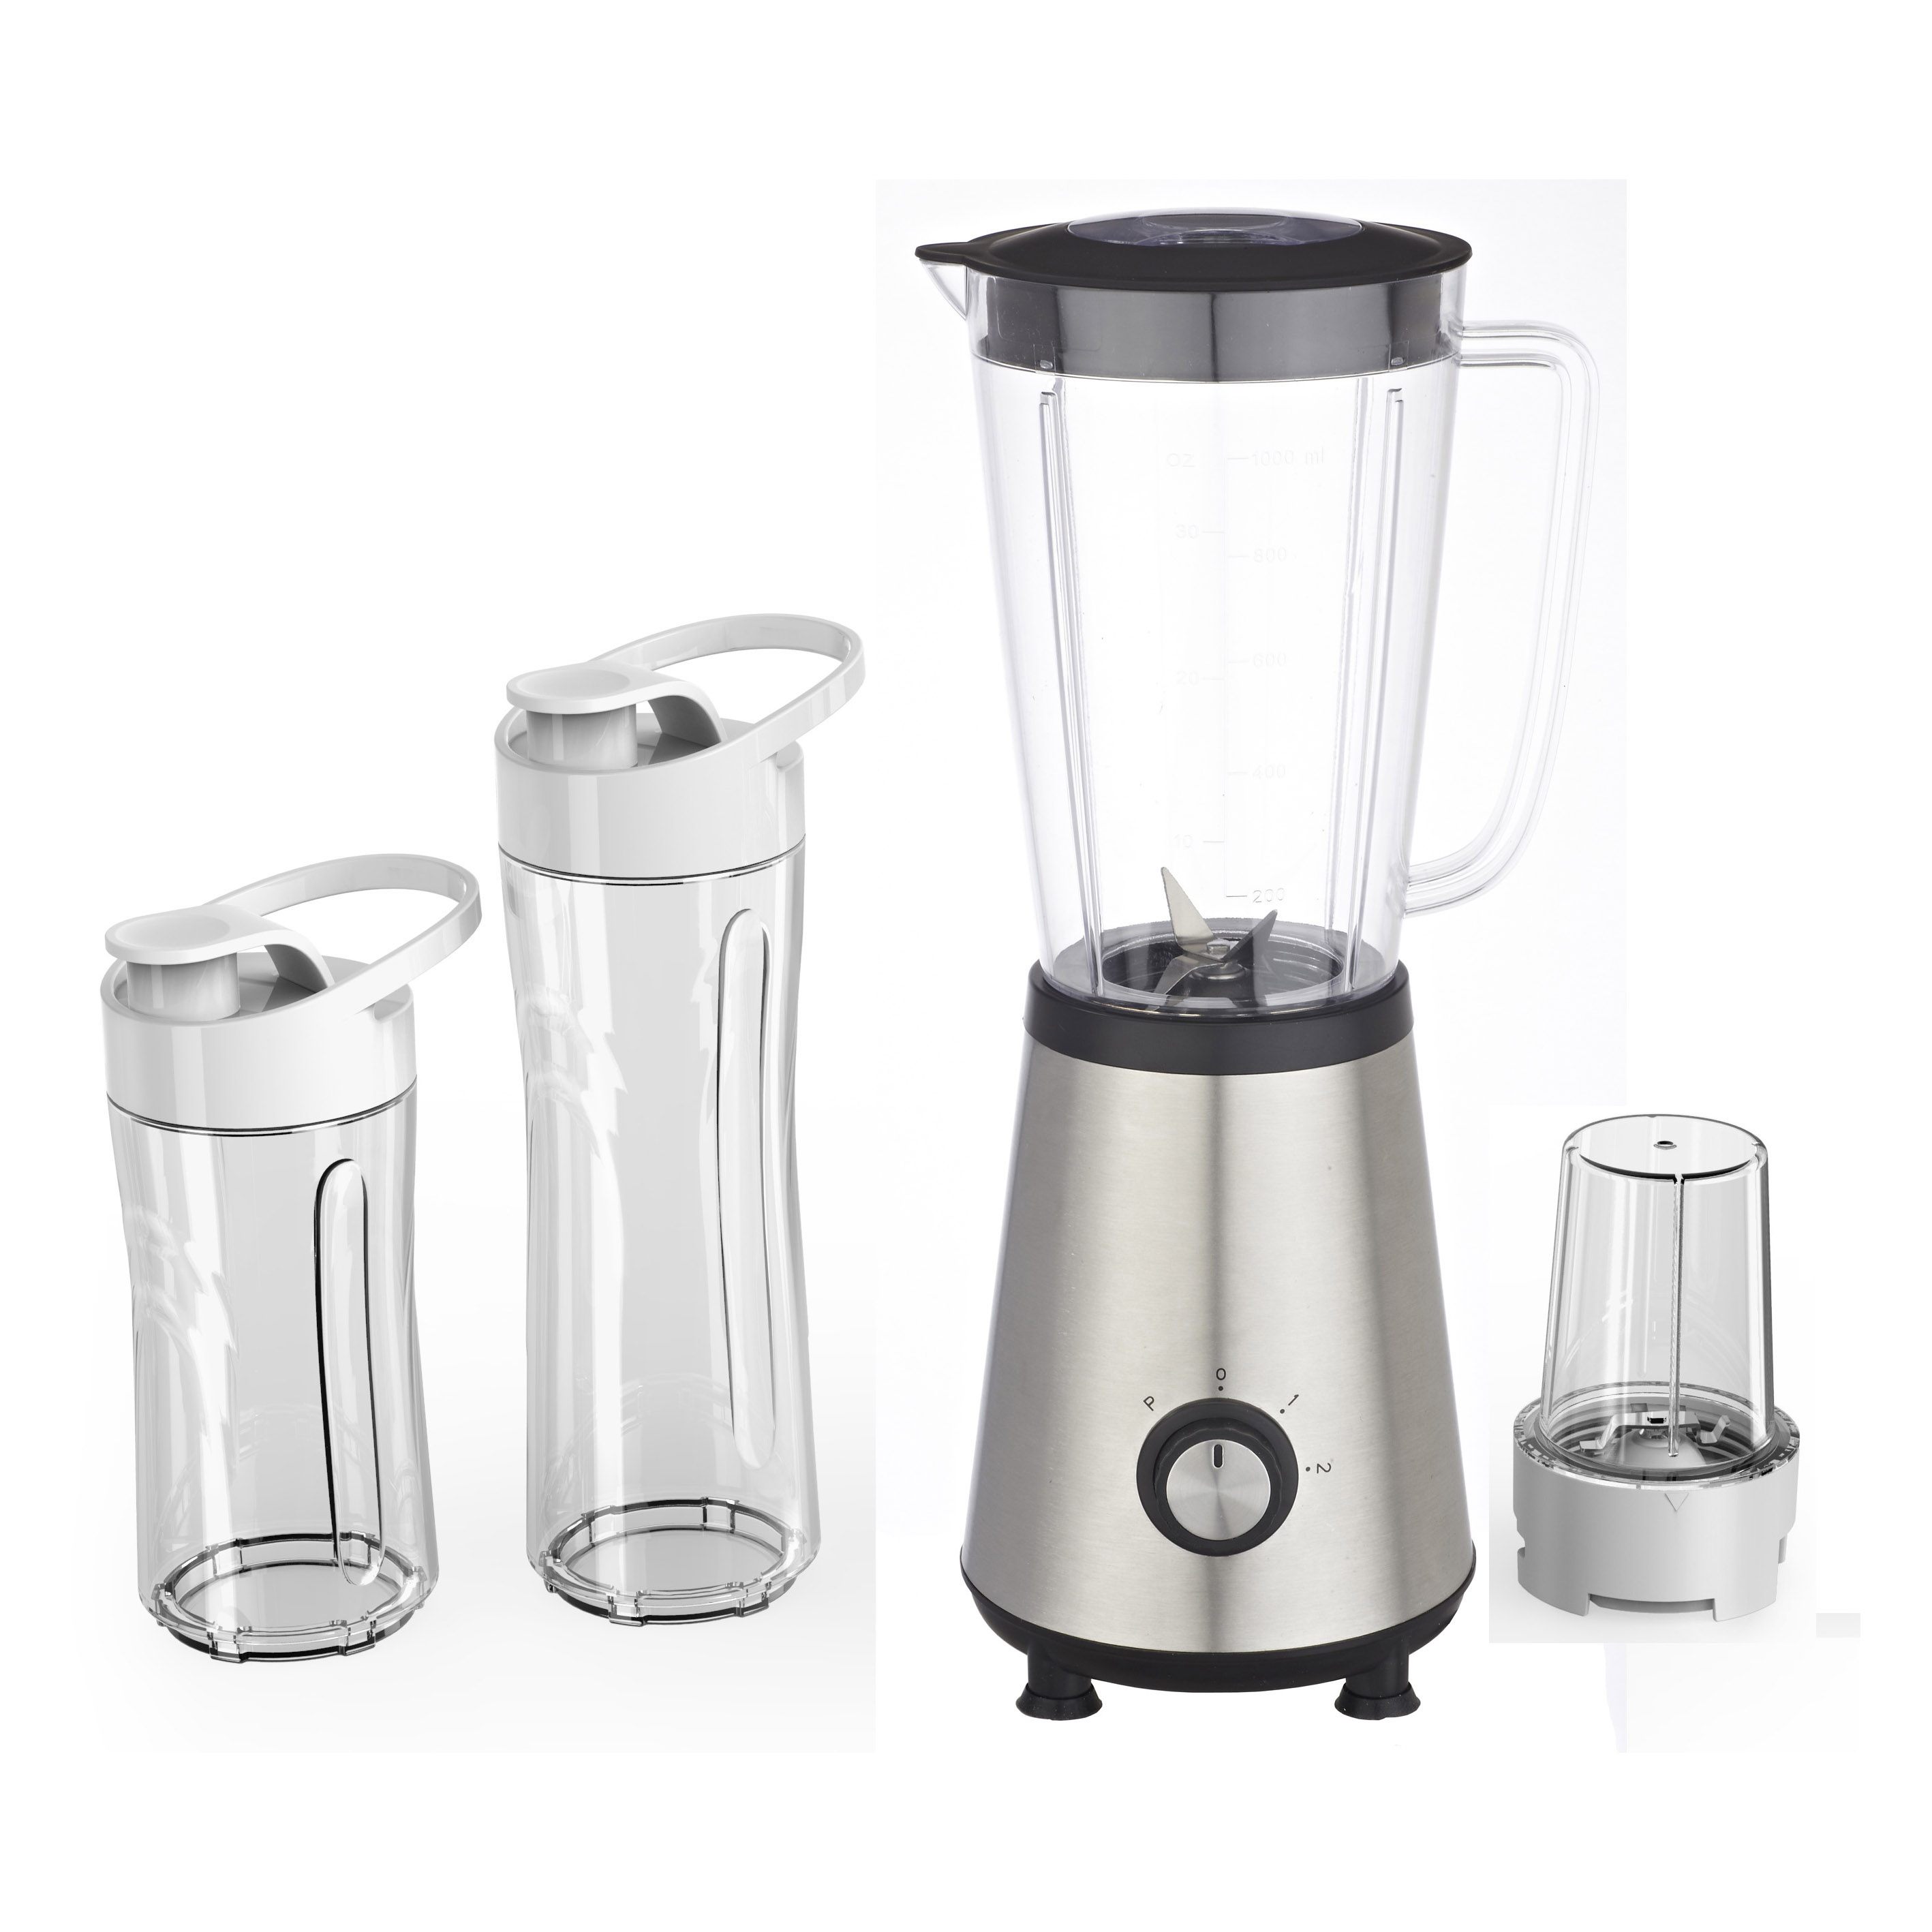 AM-1383B Table/stand blender